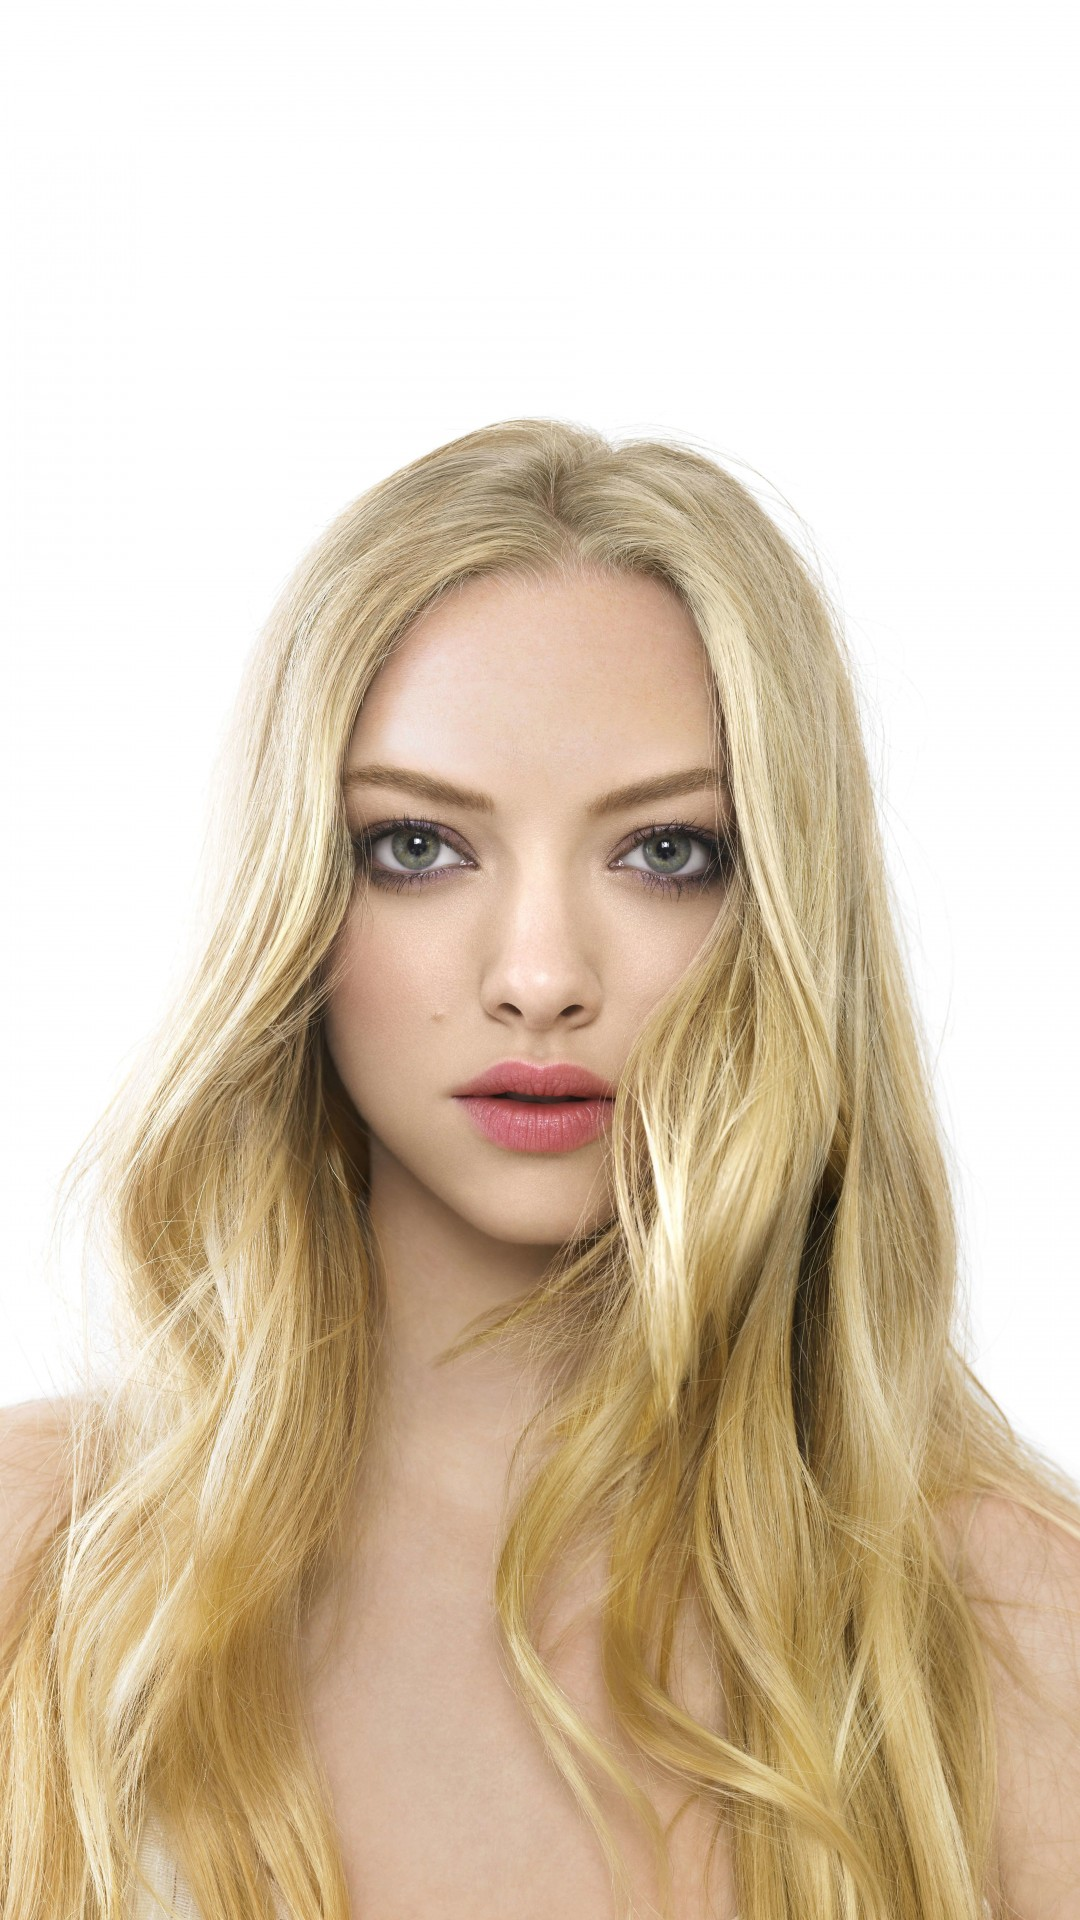 Amanda Seyfried Portrait Wallpaper for SAMSUNG Galaxy S5